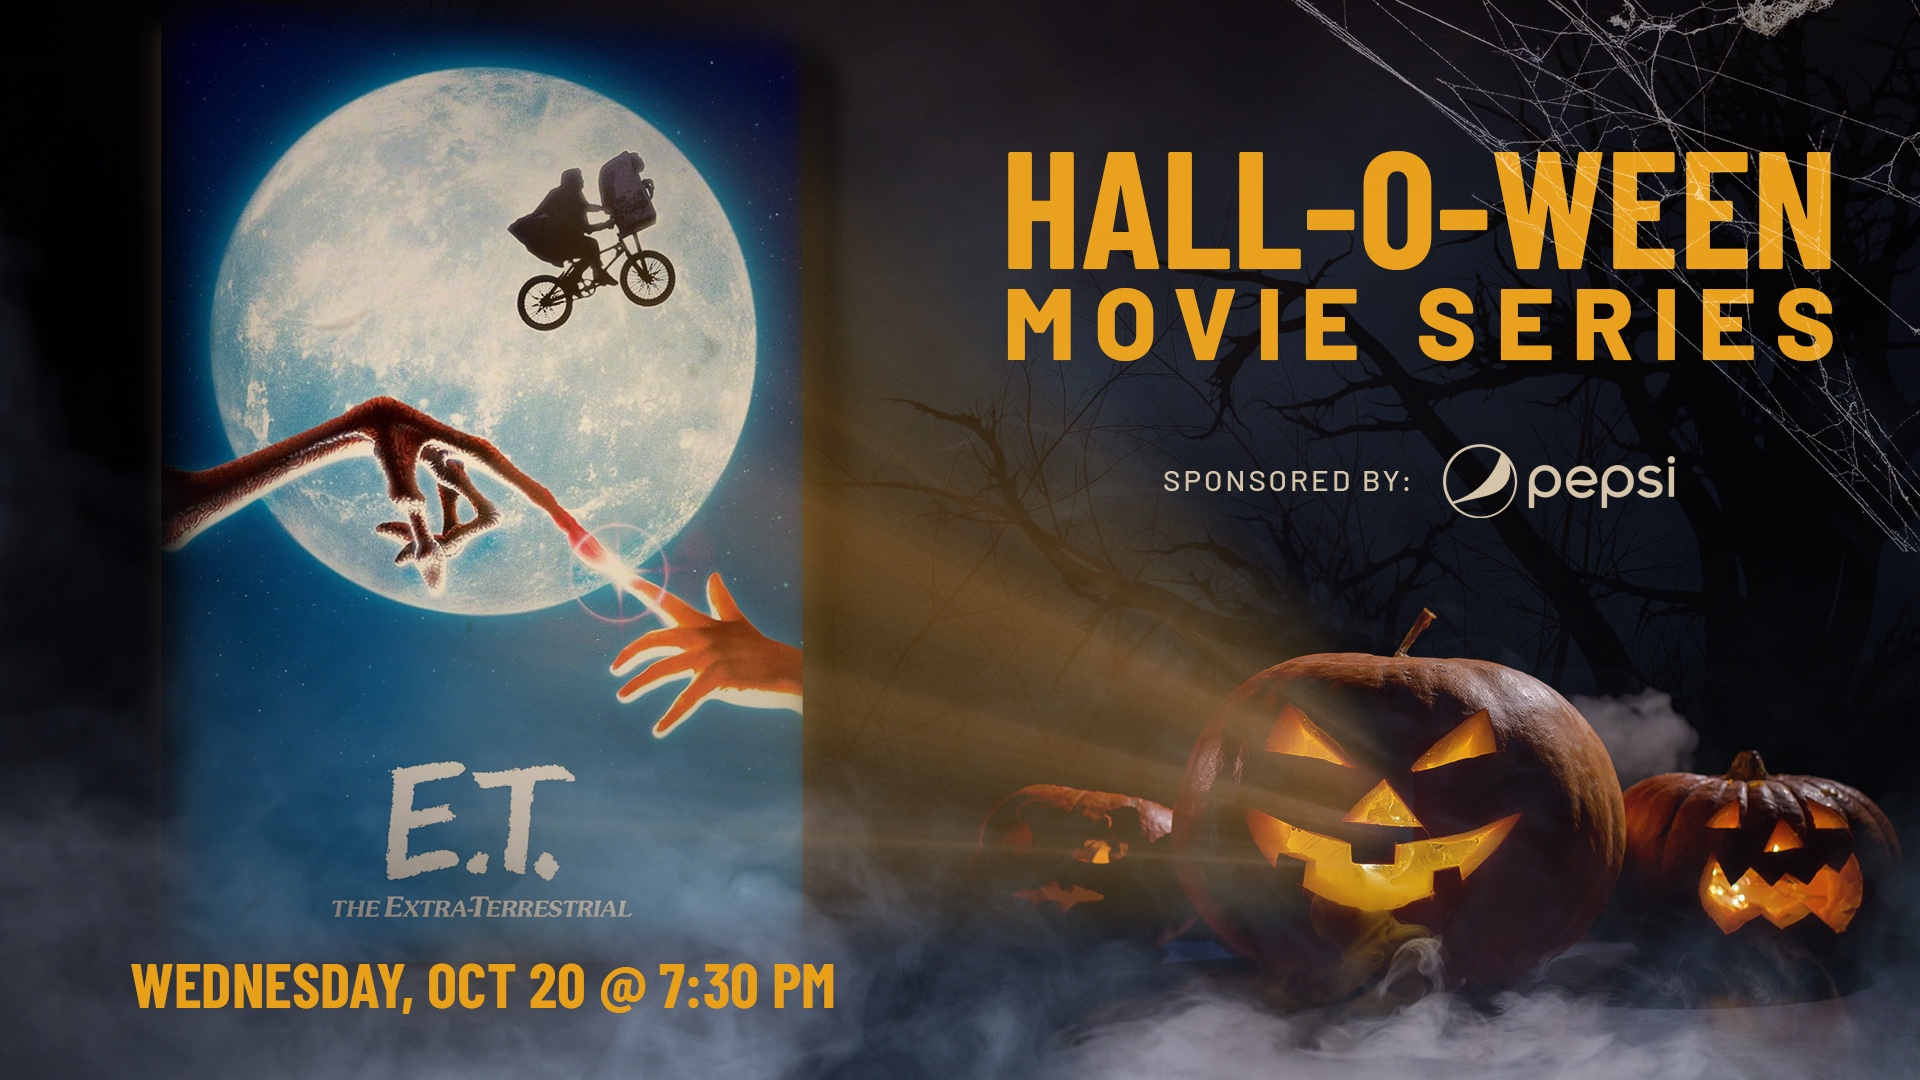 Promo image of Hall-O-Ween Movie Series: E.T.